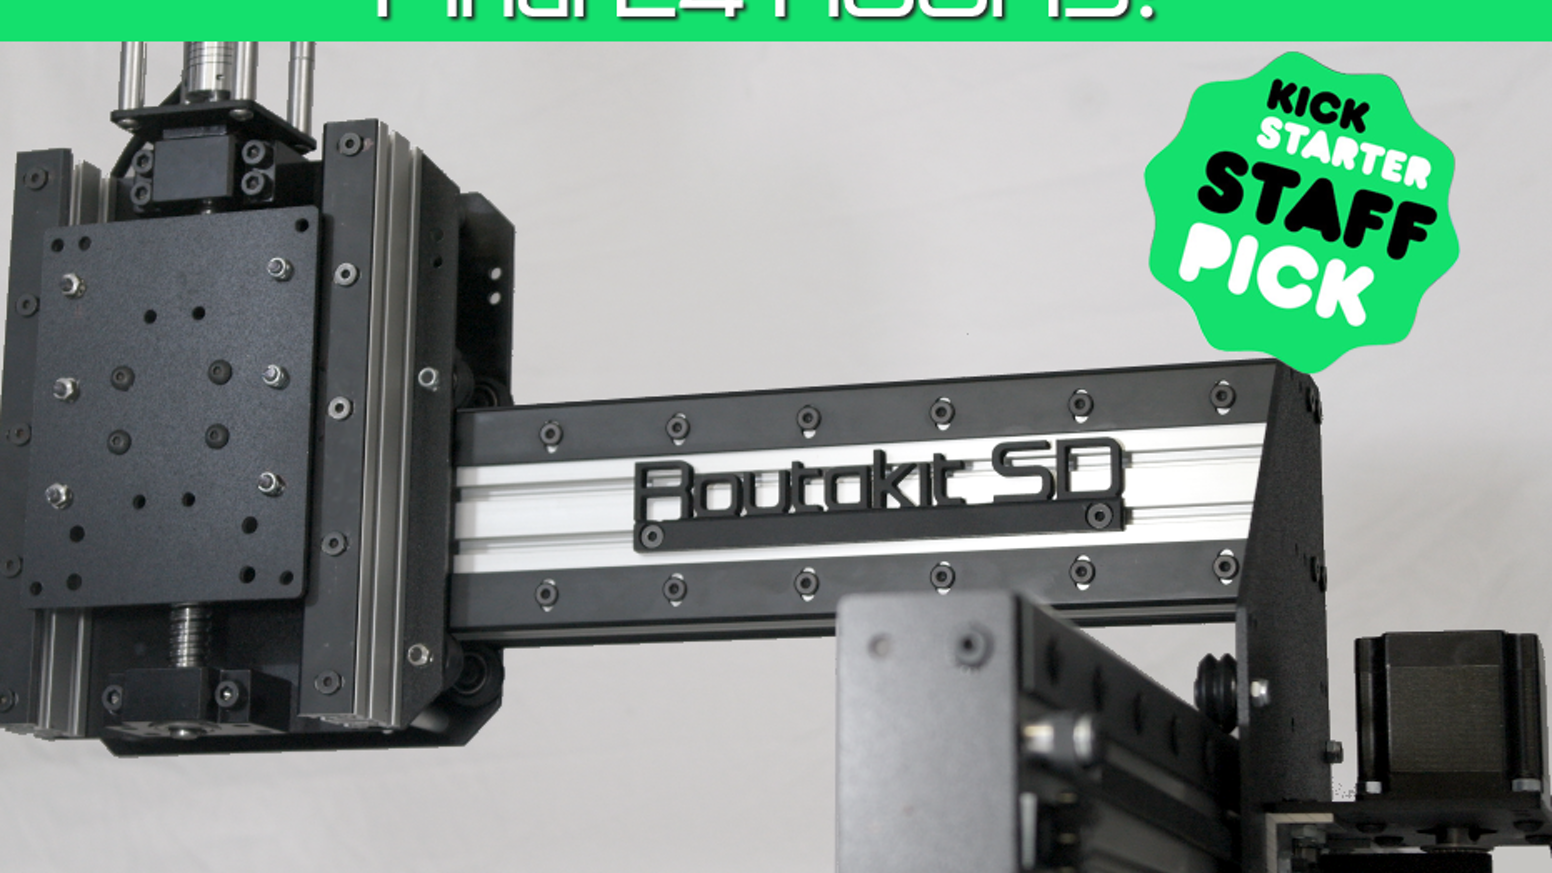 Affordable and highly modifiableopen source CNC routers for heavier duty projects. Two models to choose from with high precision and rigidity. Missed the campaign? Click the pre-order button below to reserve your Routakit CNC.